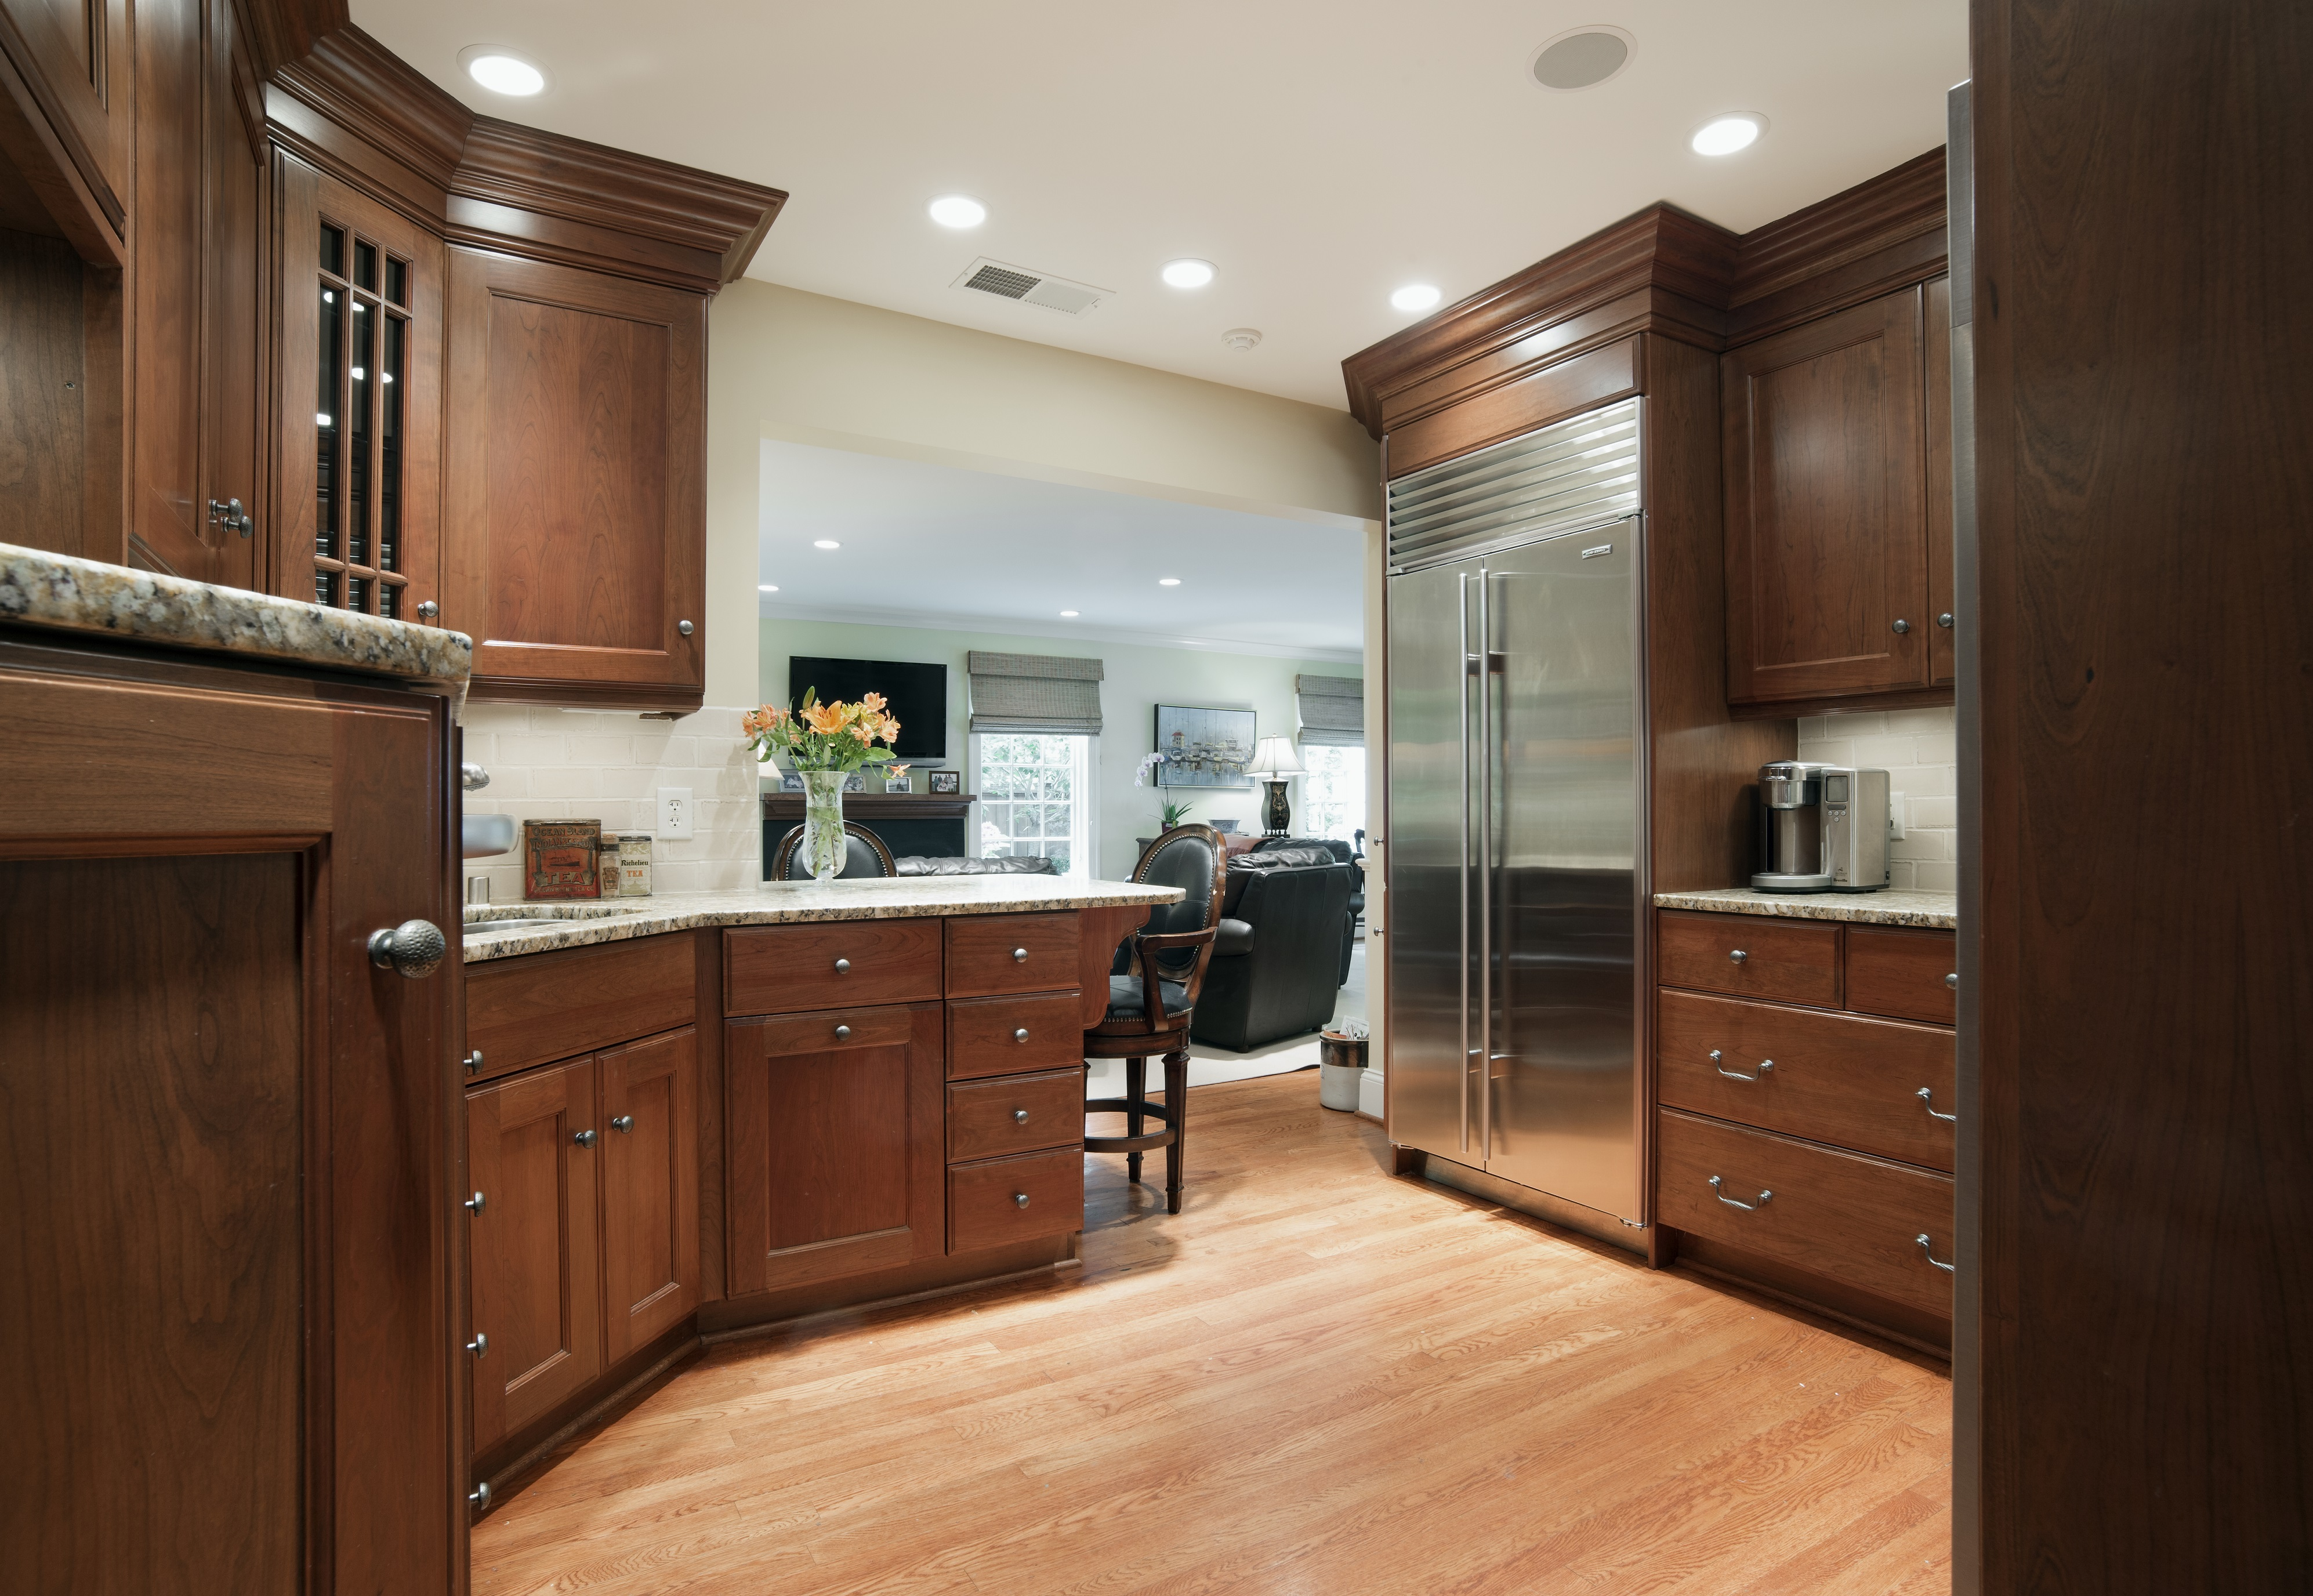 Kitchen Cabinets by BACK Construction in Lexington, Kentucky